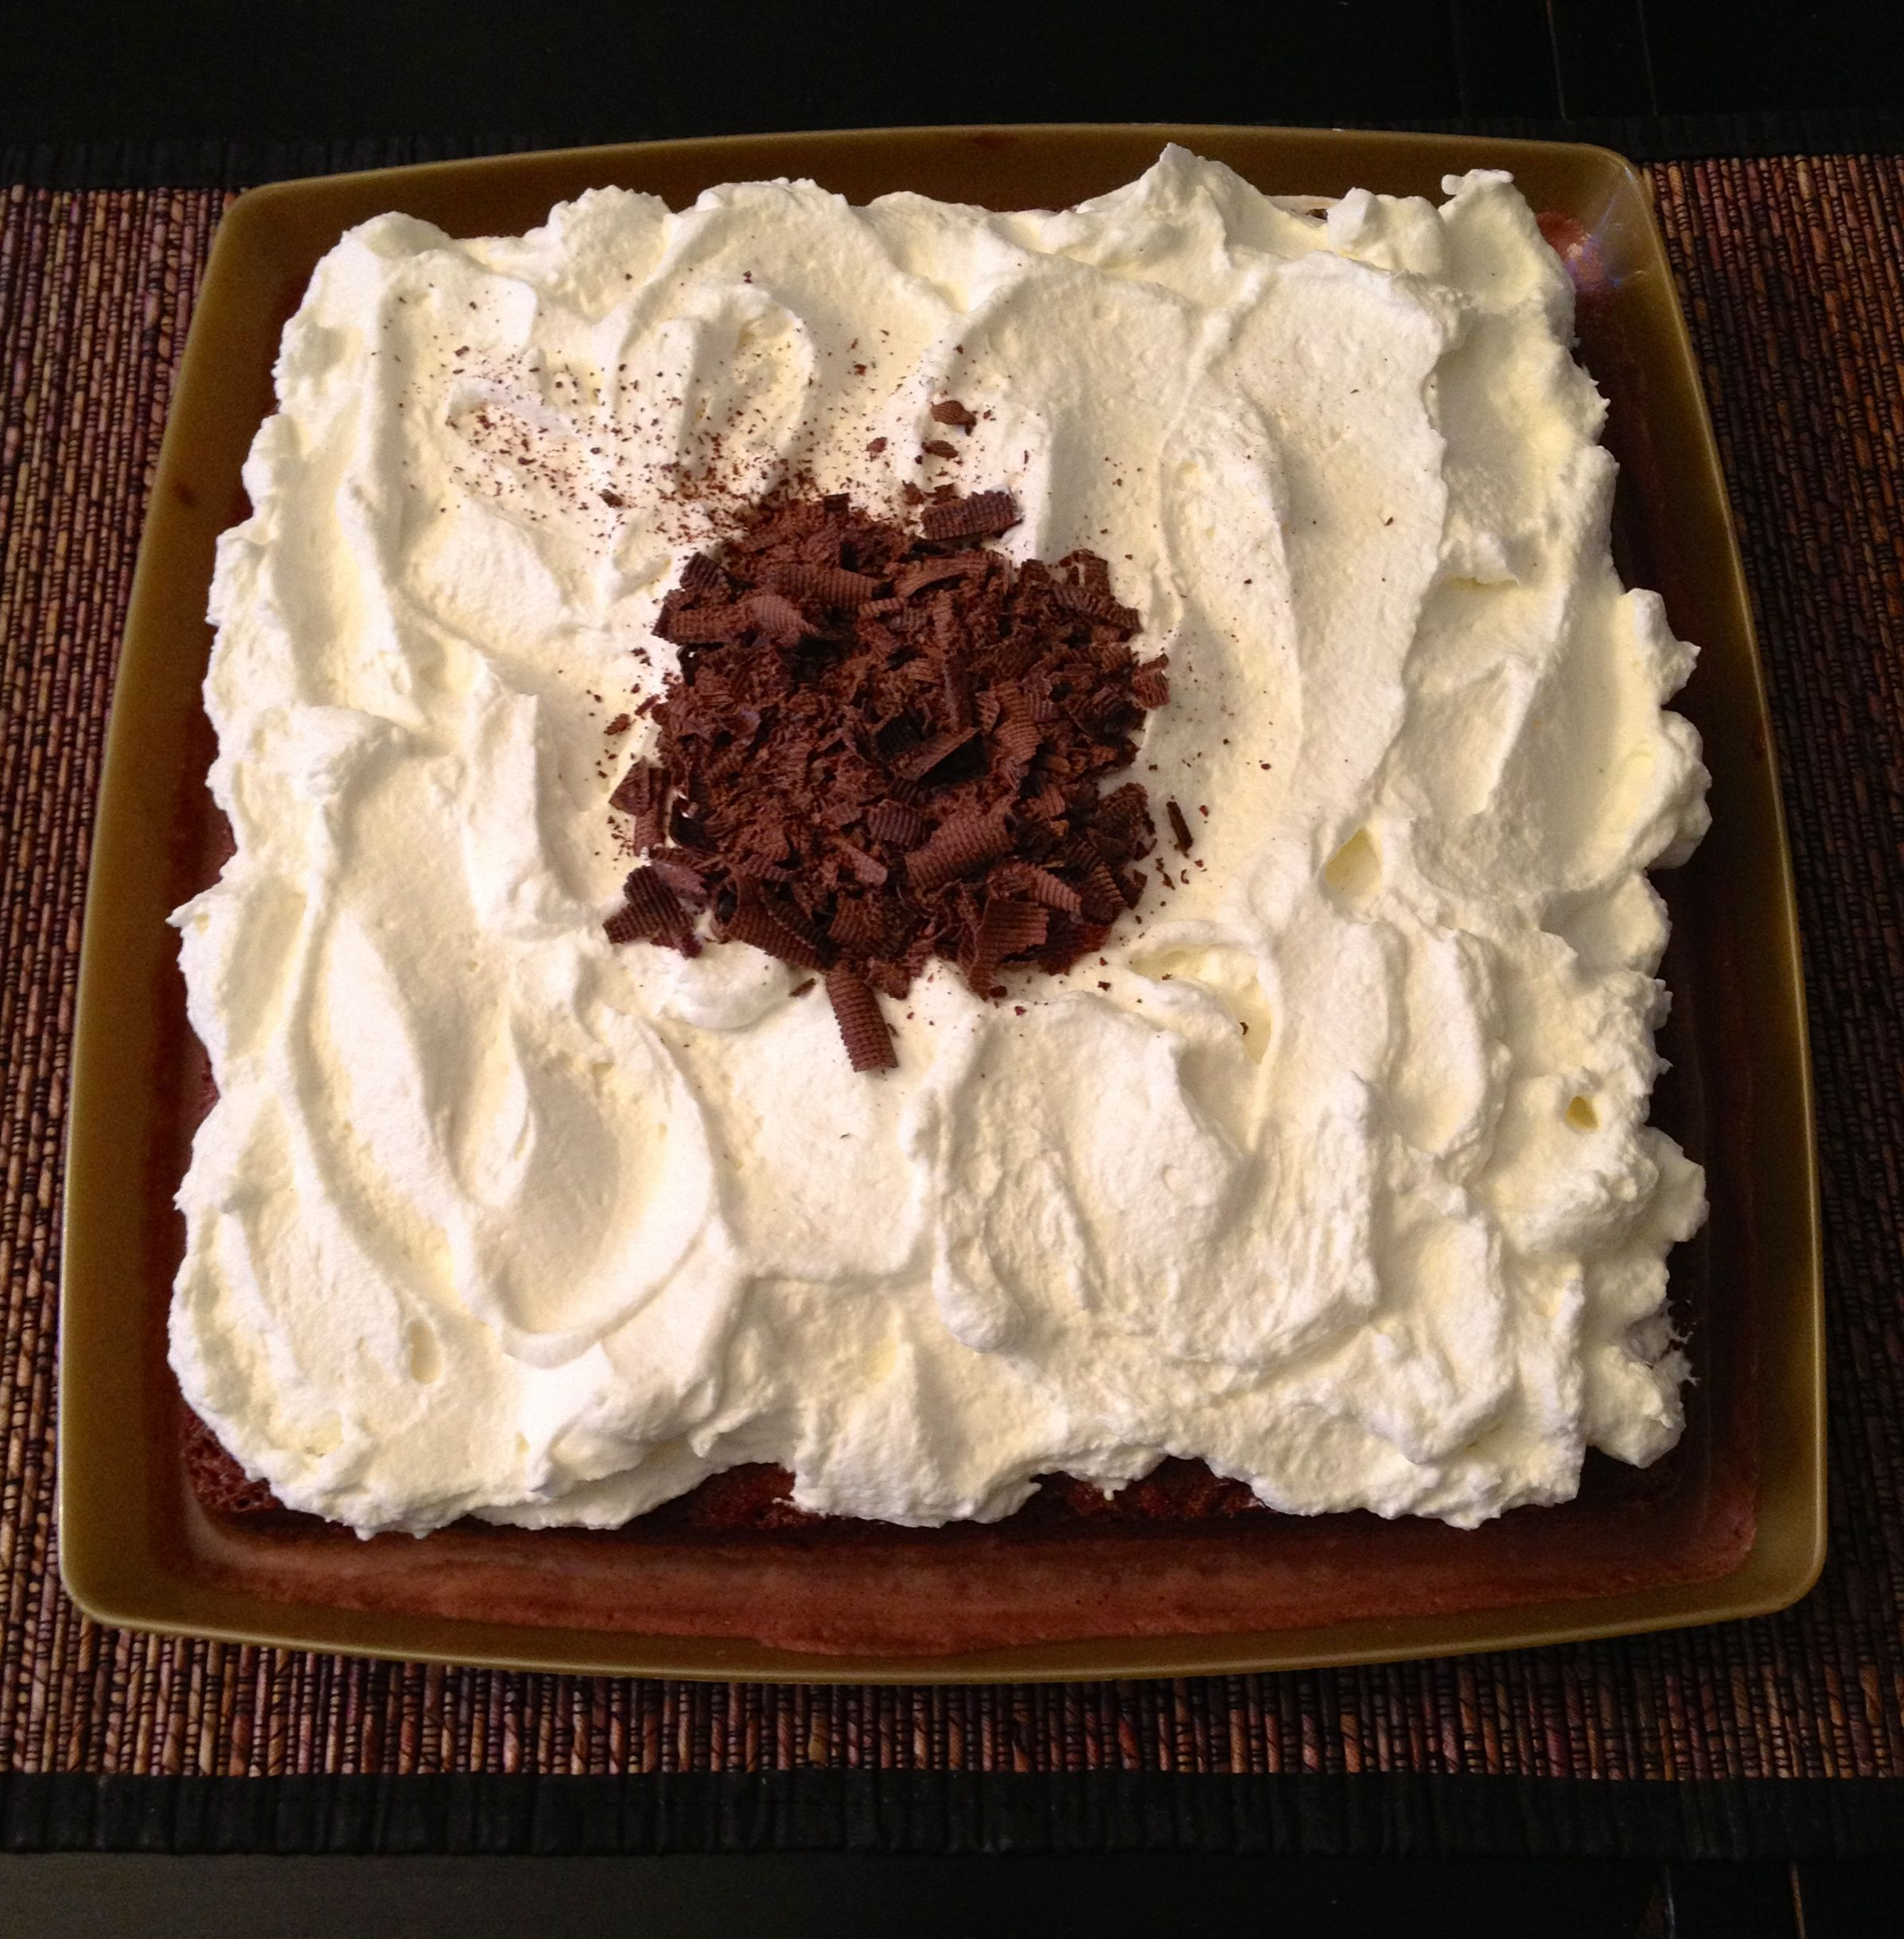 Chocolate Tres Leches | Cakes I've made | Pinterest